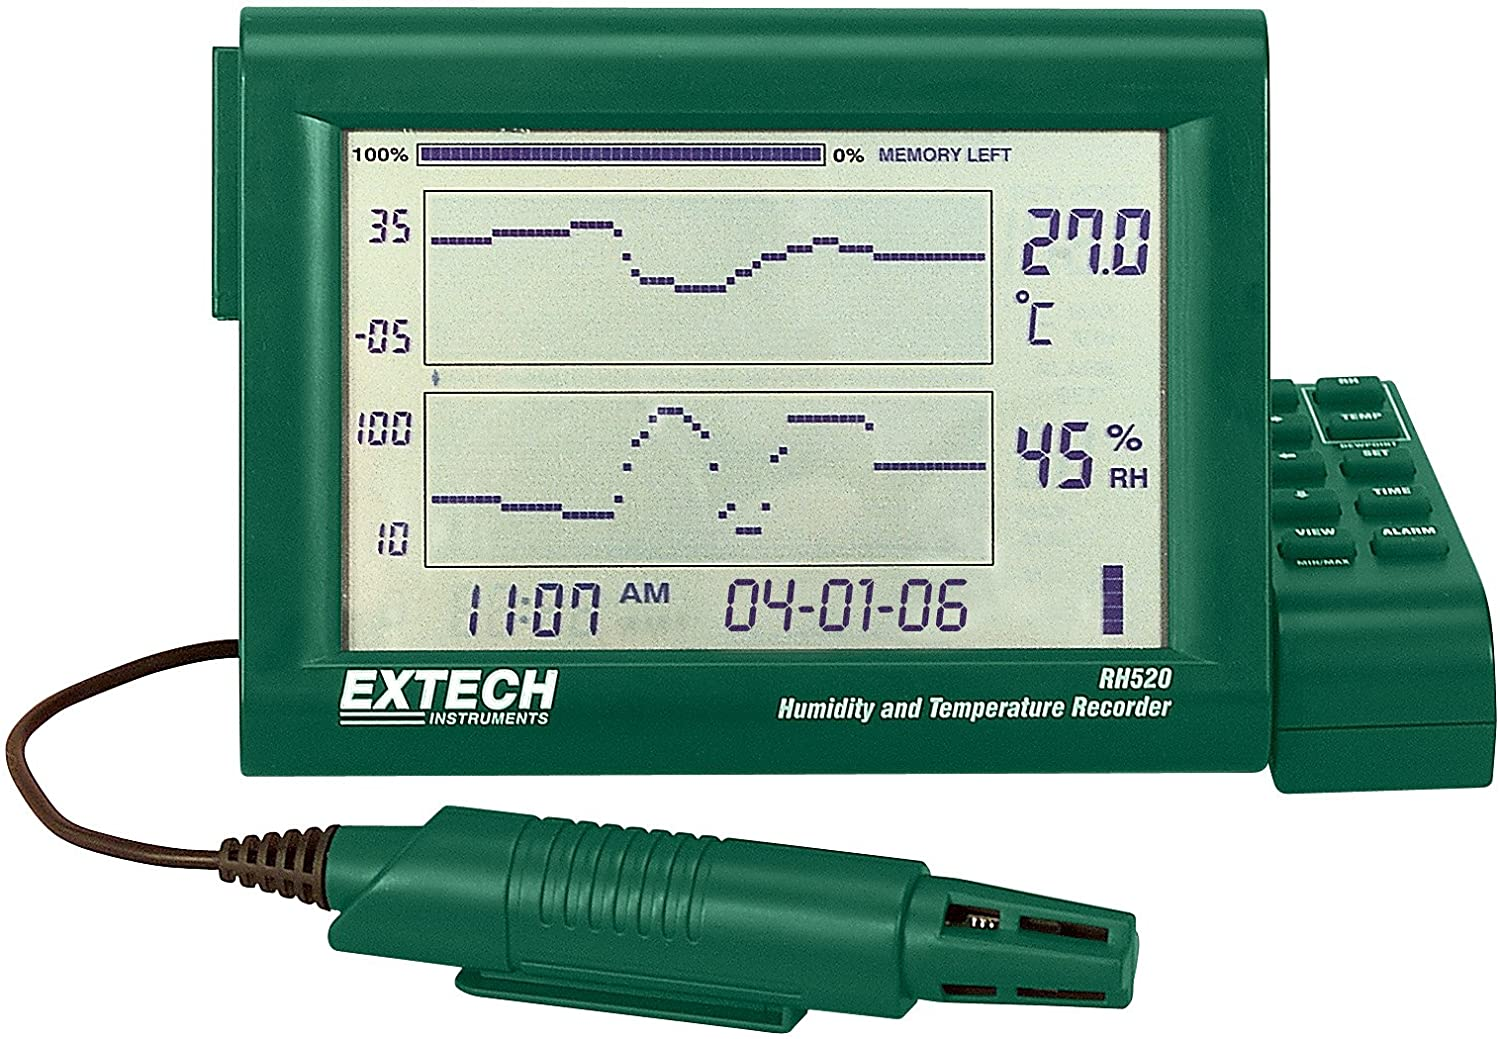 EXTECH RH520A-240 - Humidity + Temperature Chart Recorder with Detachable Probe